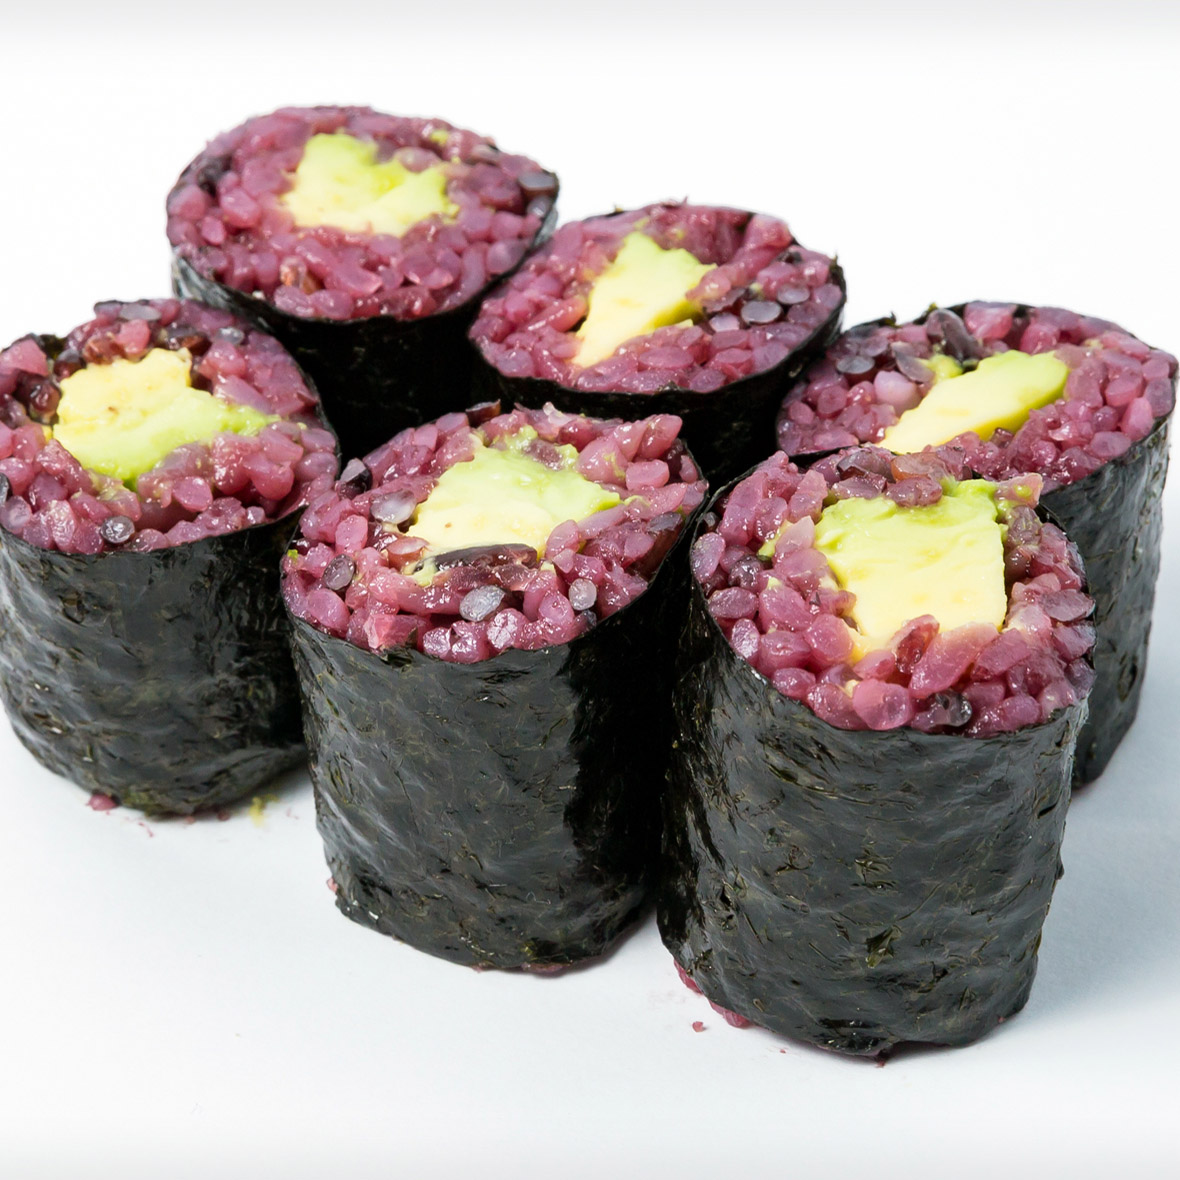 Black Rice Avocado Roll (Vege)